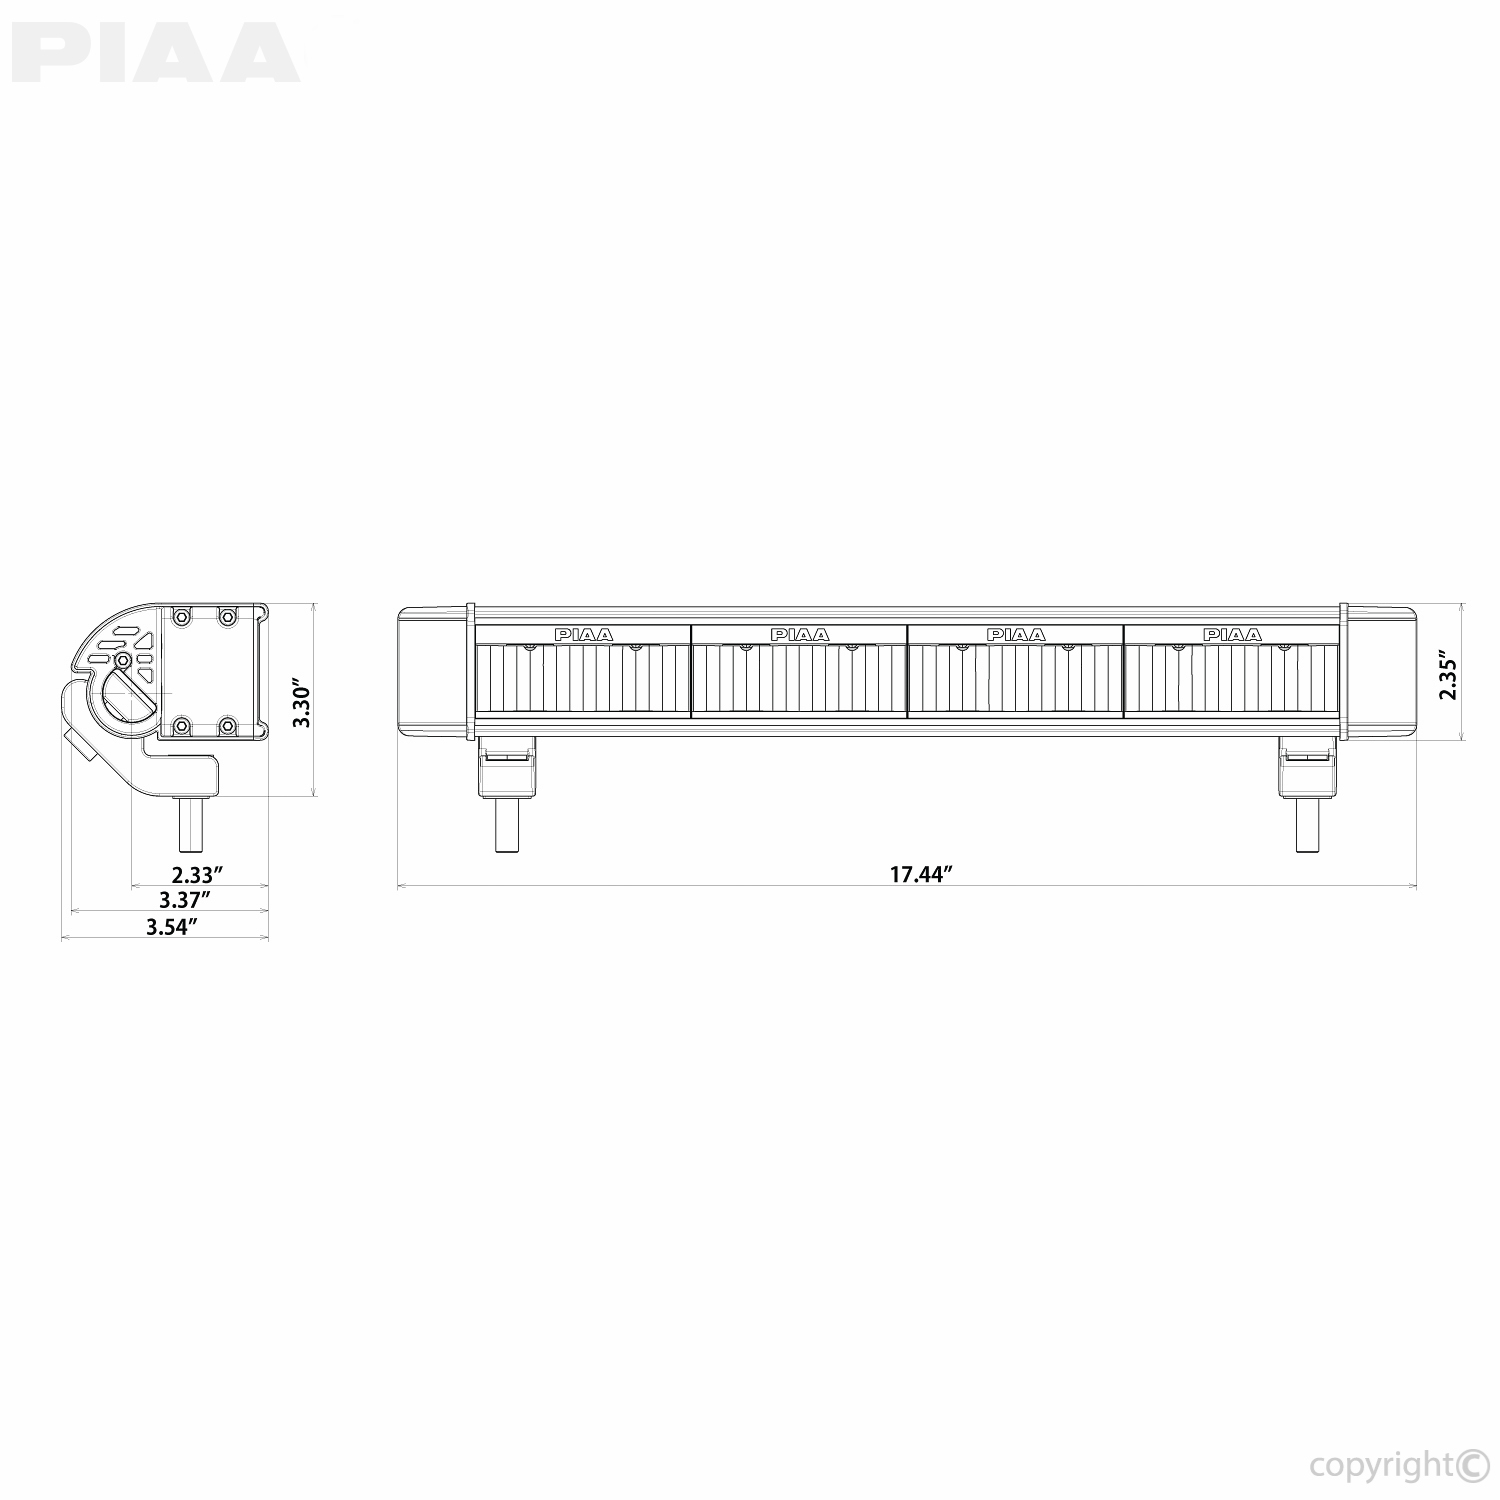 Piaa Light Wiring Diagram Electrical Diagrams Pacesetter Rf18 18 White Wide Driving Hybrid Beam 26 07118 2008 Toyota Tundra Parts